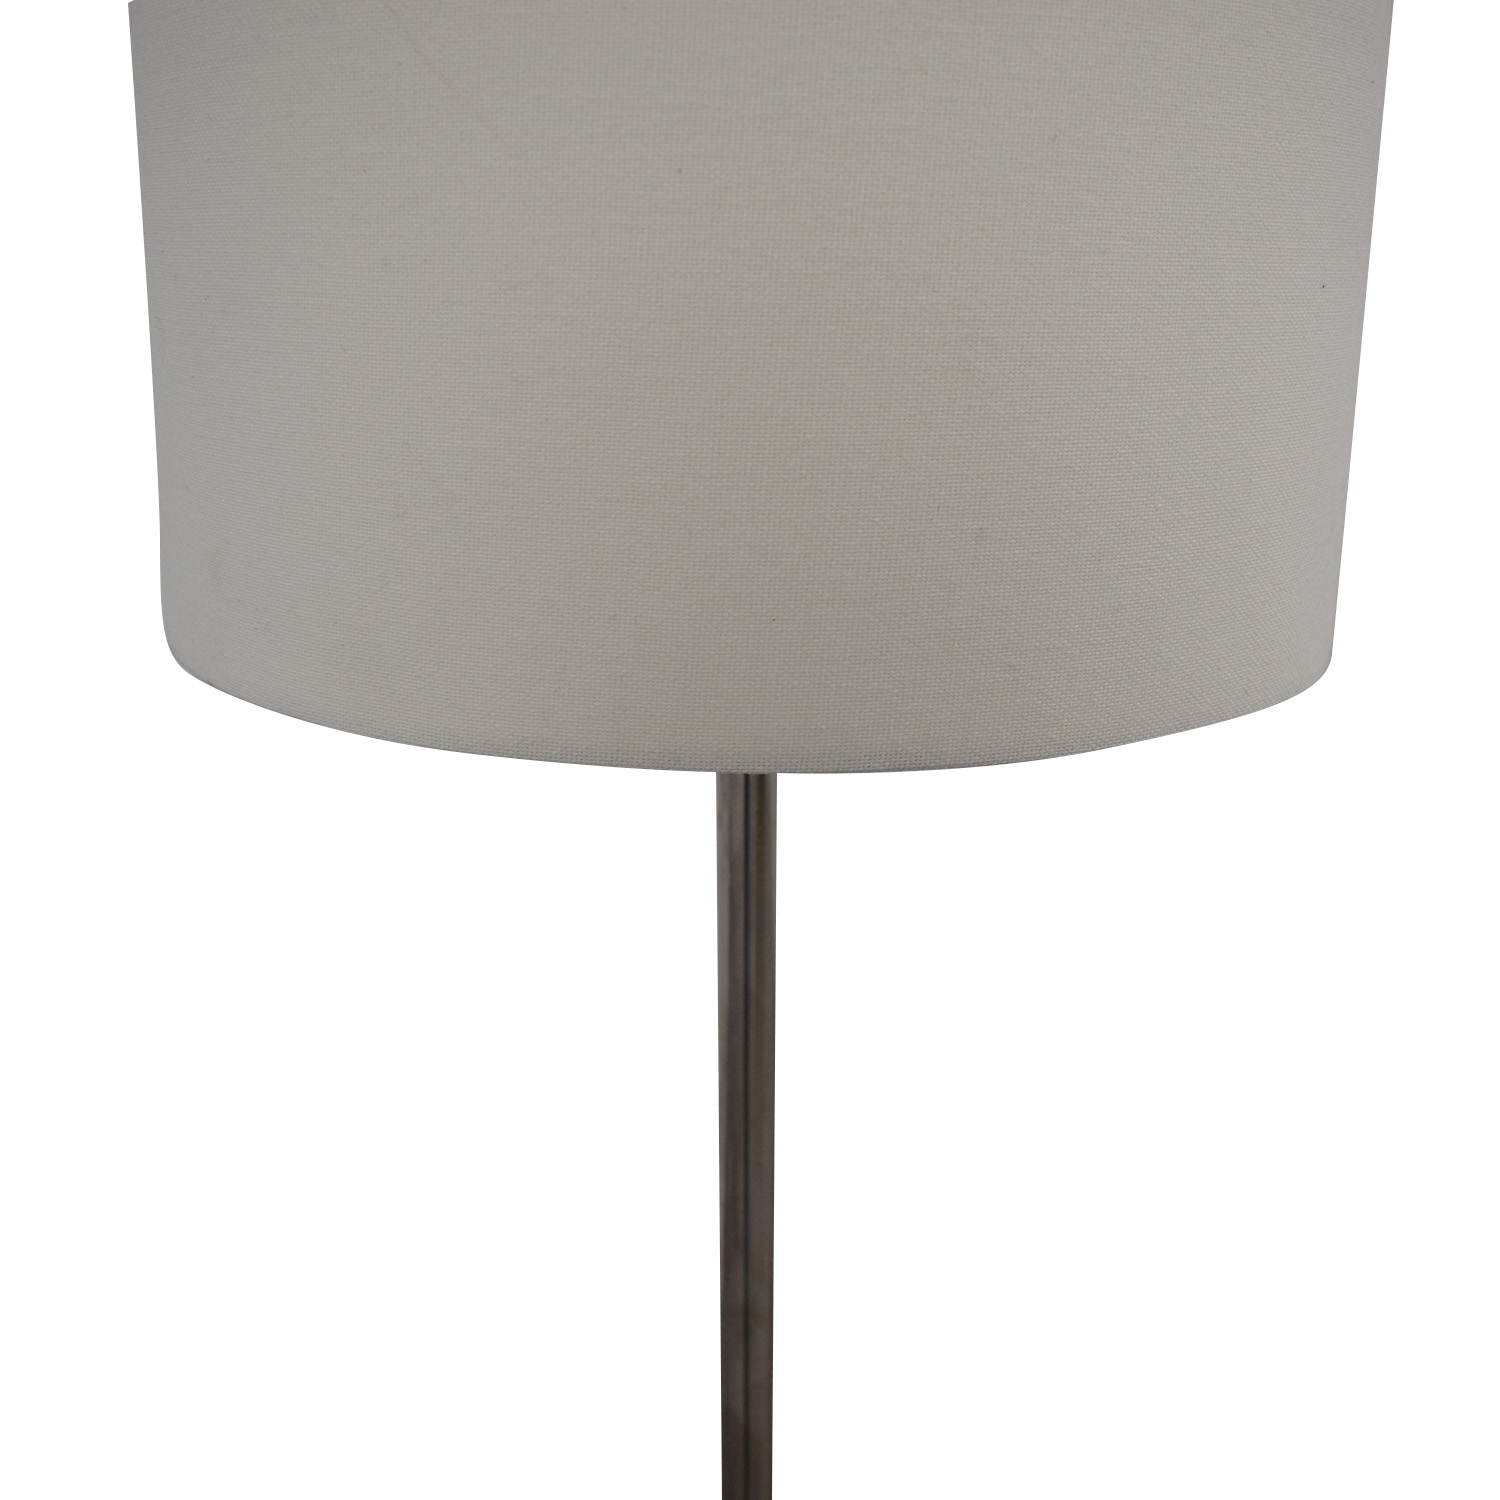 Crate & Barrel Crate & Barrel Tribeca Floor Lamp